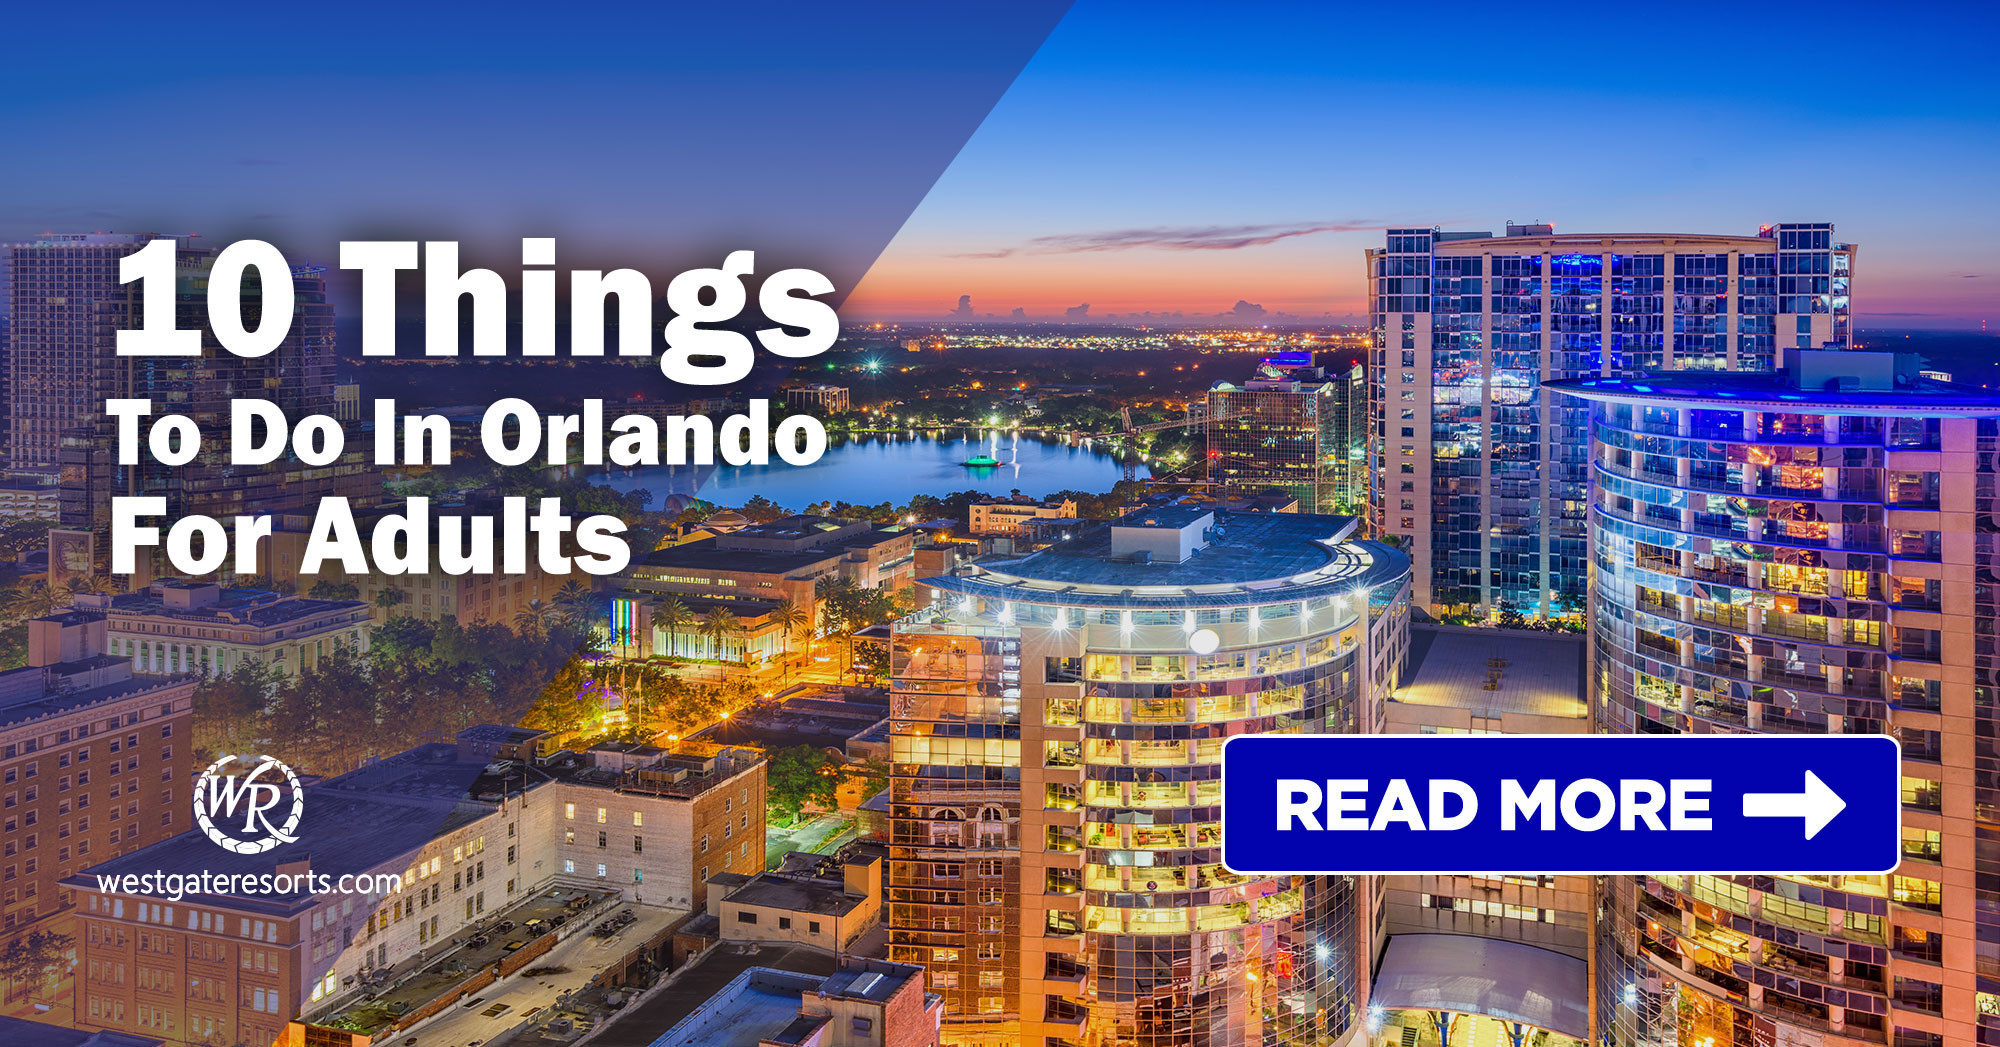 10 Things to do in Orlando for Adults